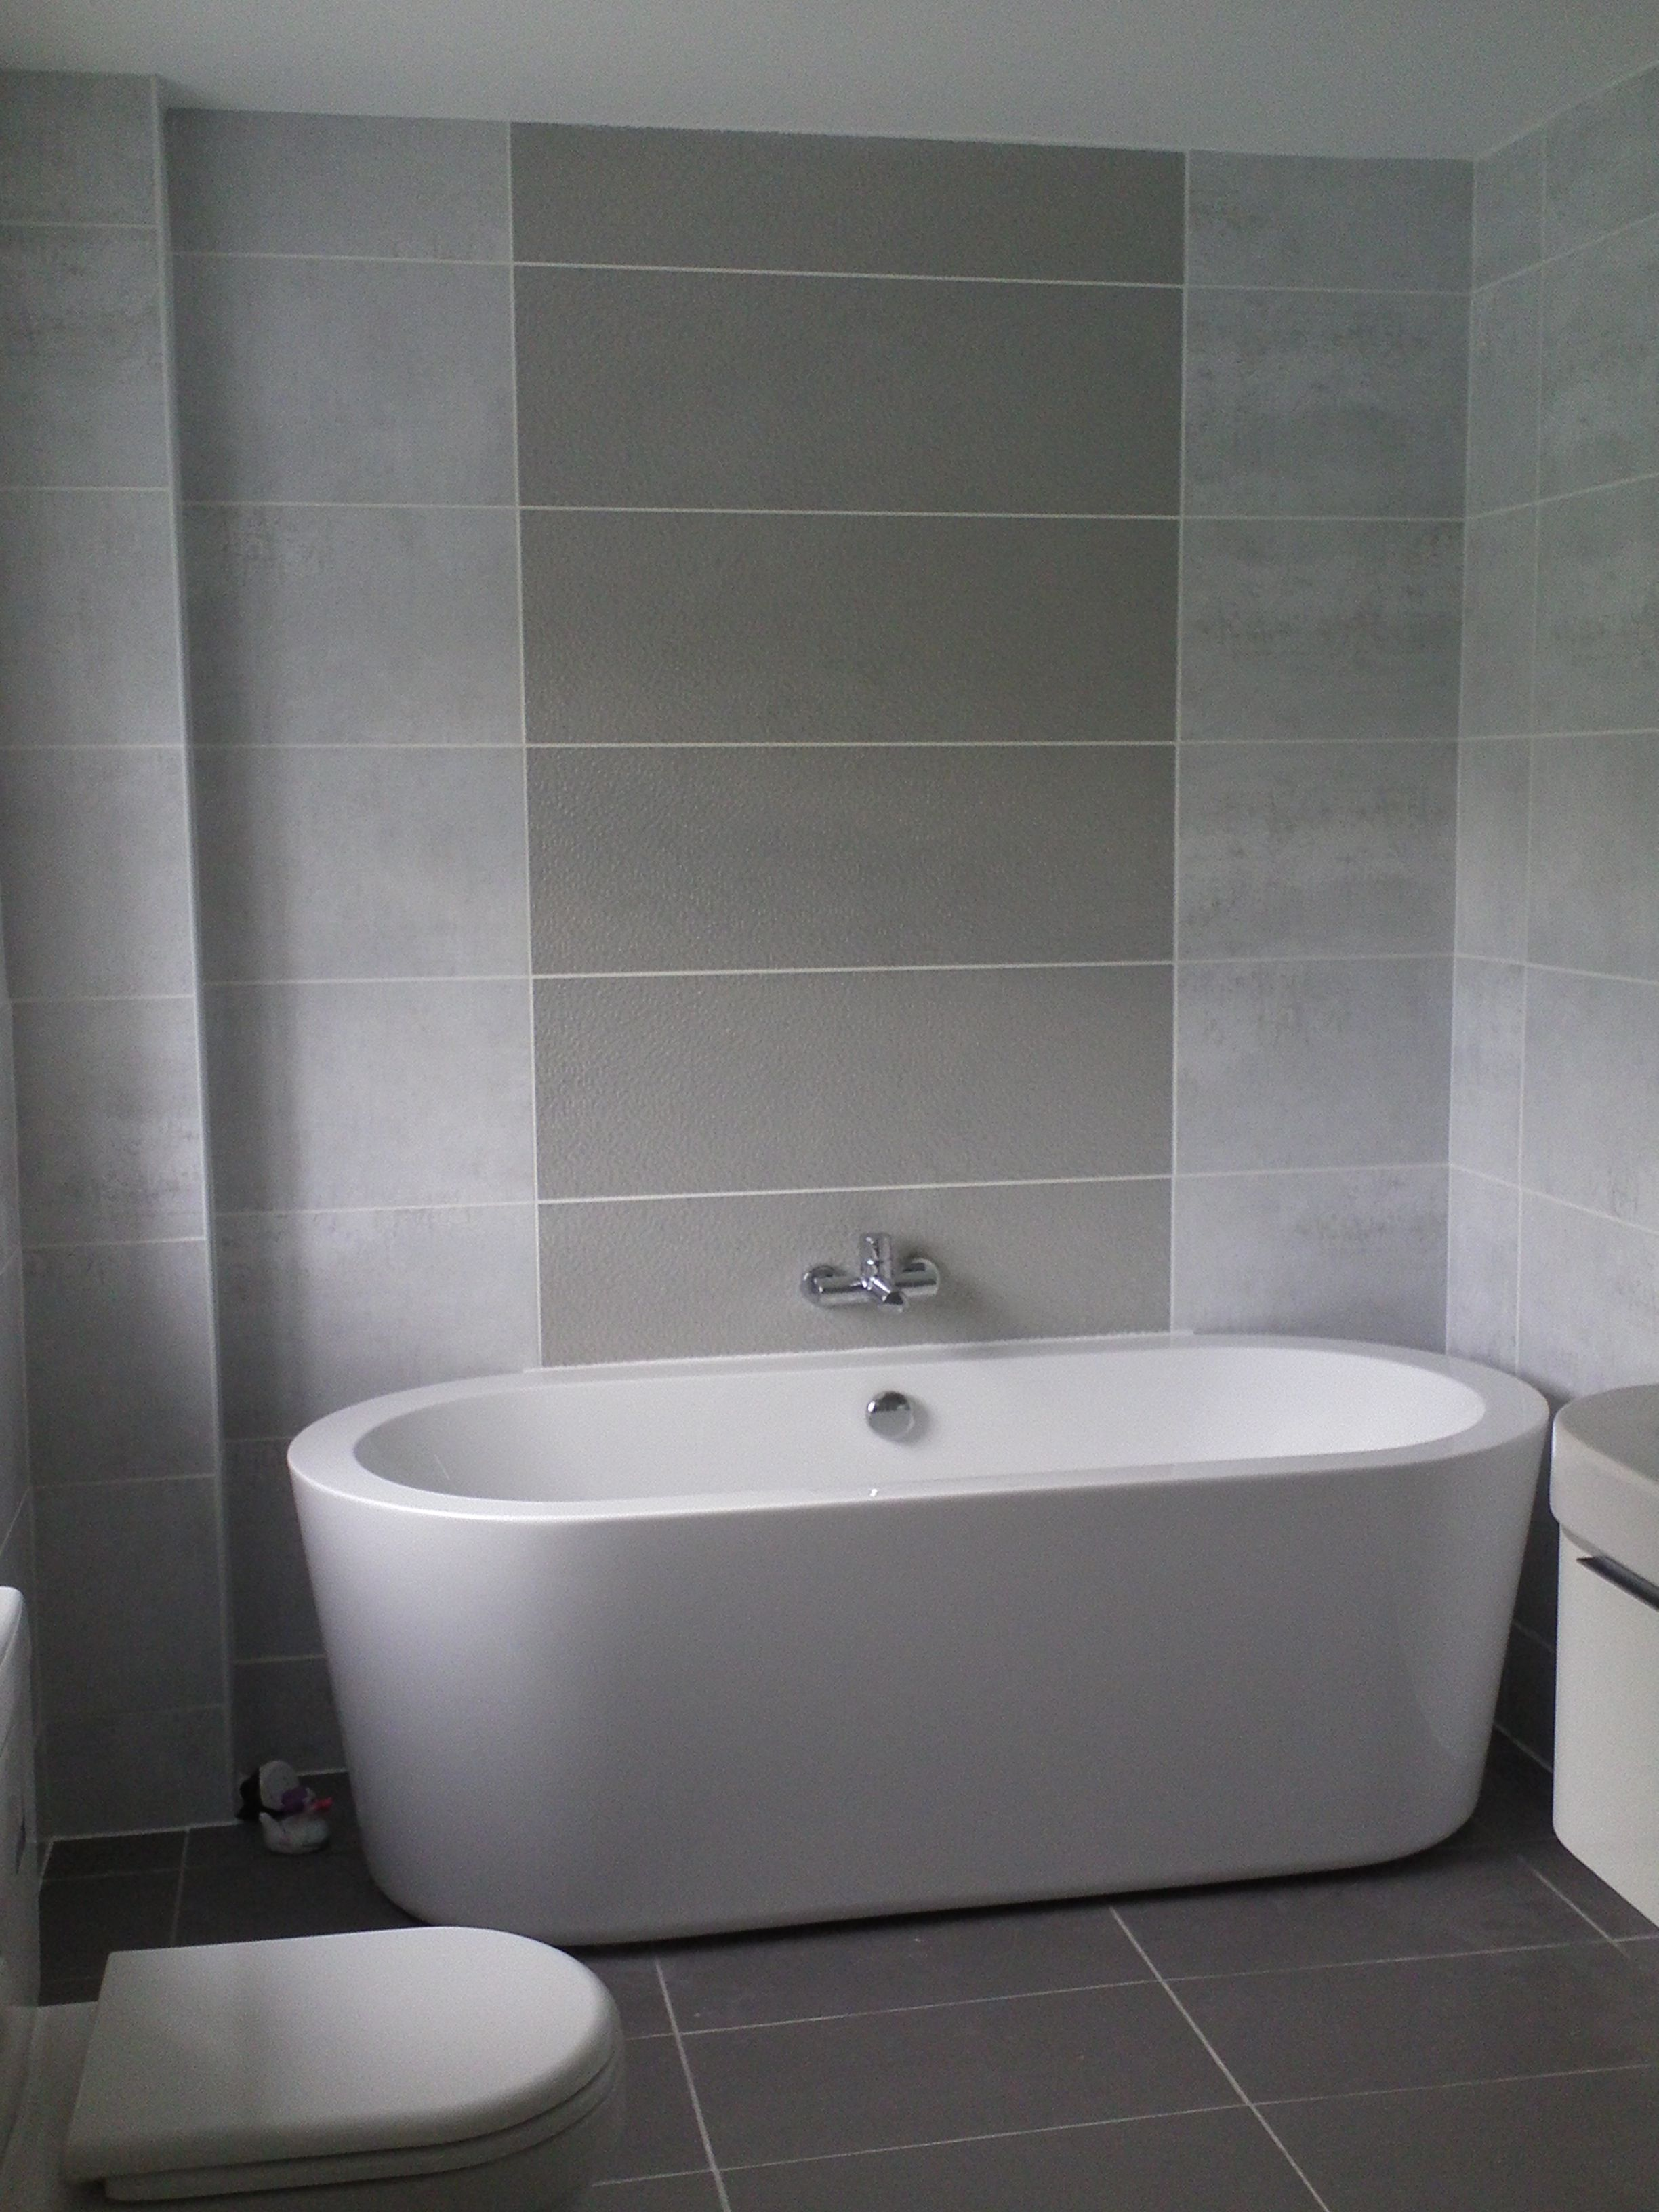 Bathroom tiles designs for small spaces - Inspiring Small Bathroom Color Ideas With Grey Wall Tiled As Well As Simple